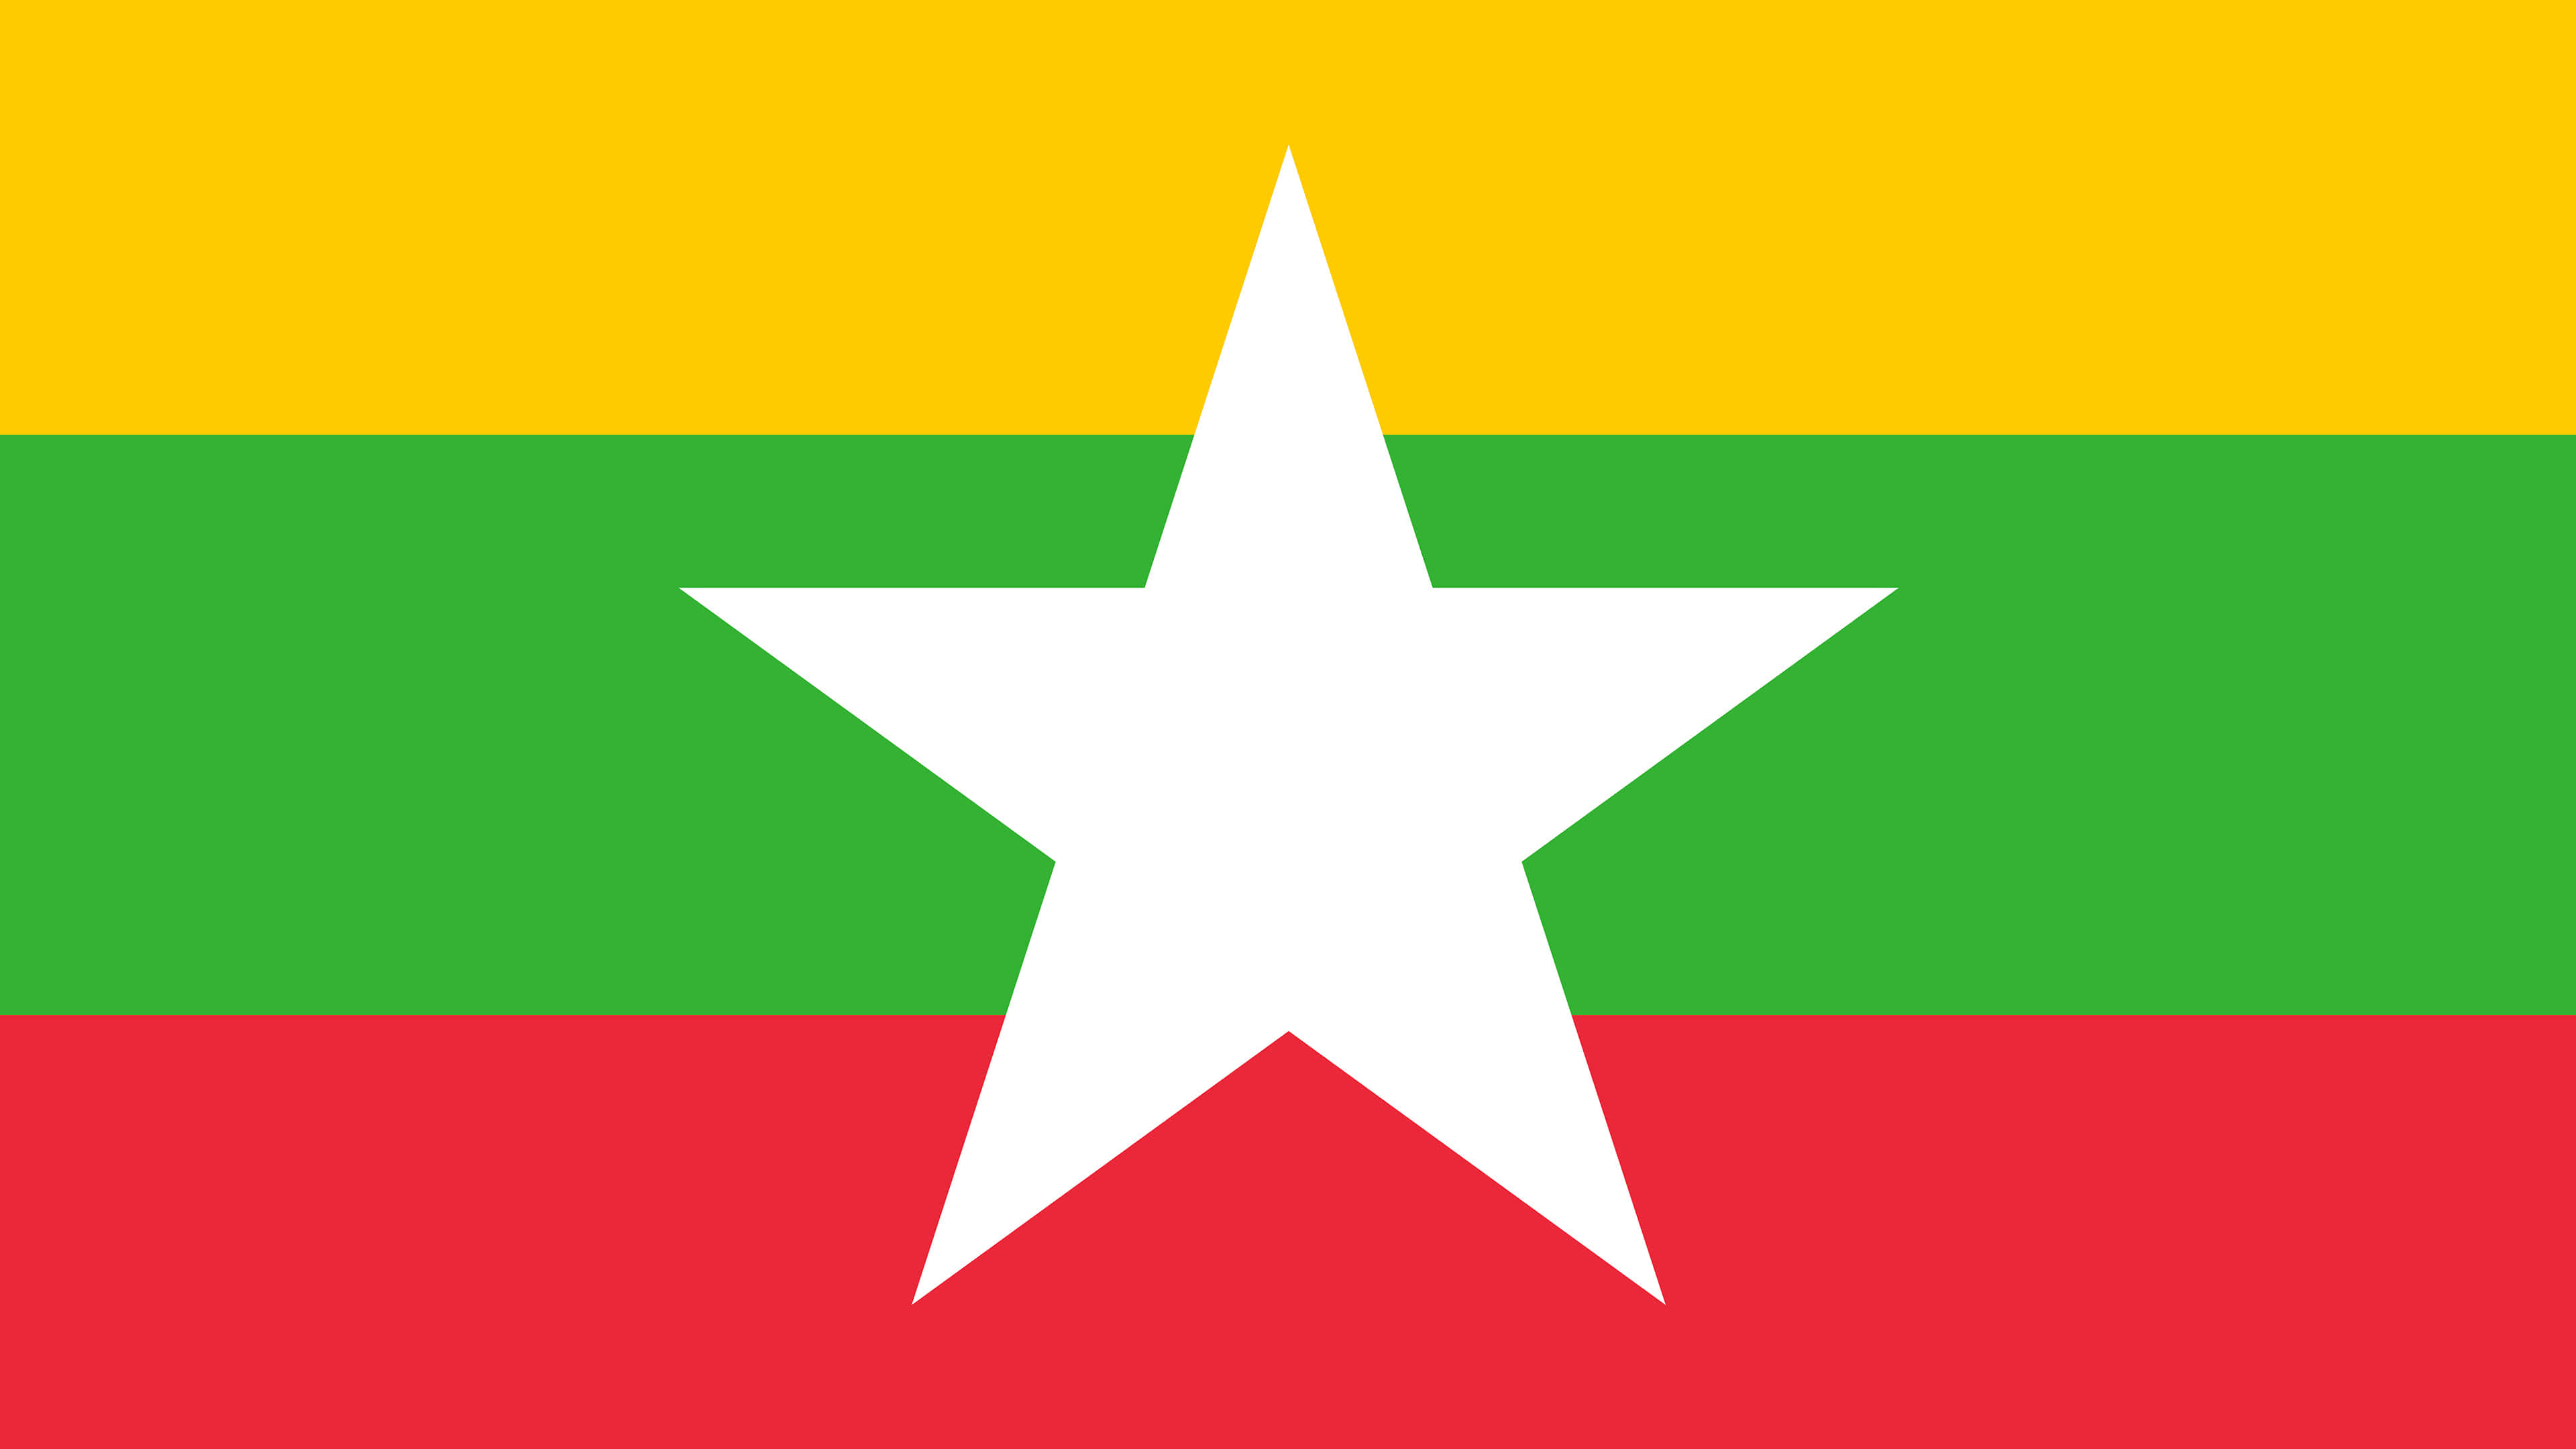 myanmar flag uhd 4k wallpaper